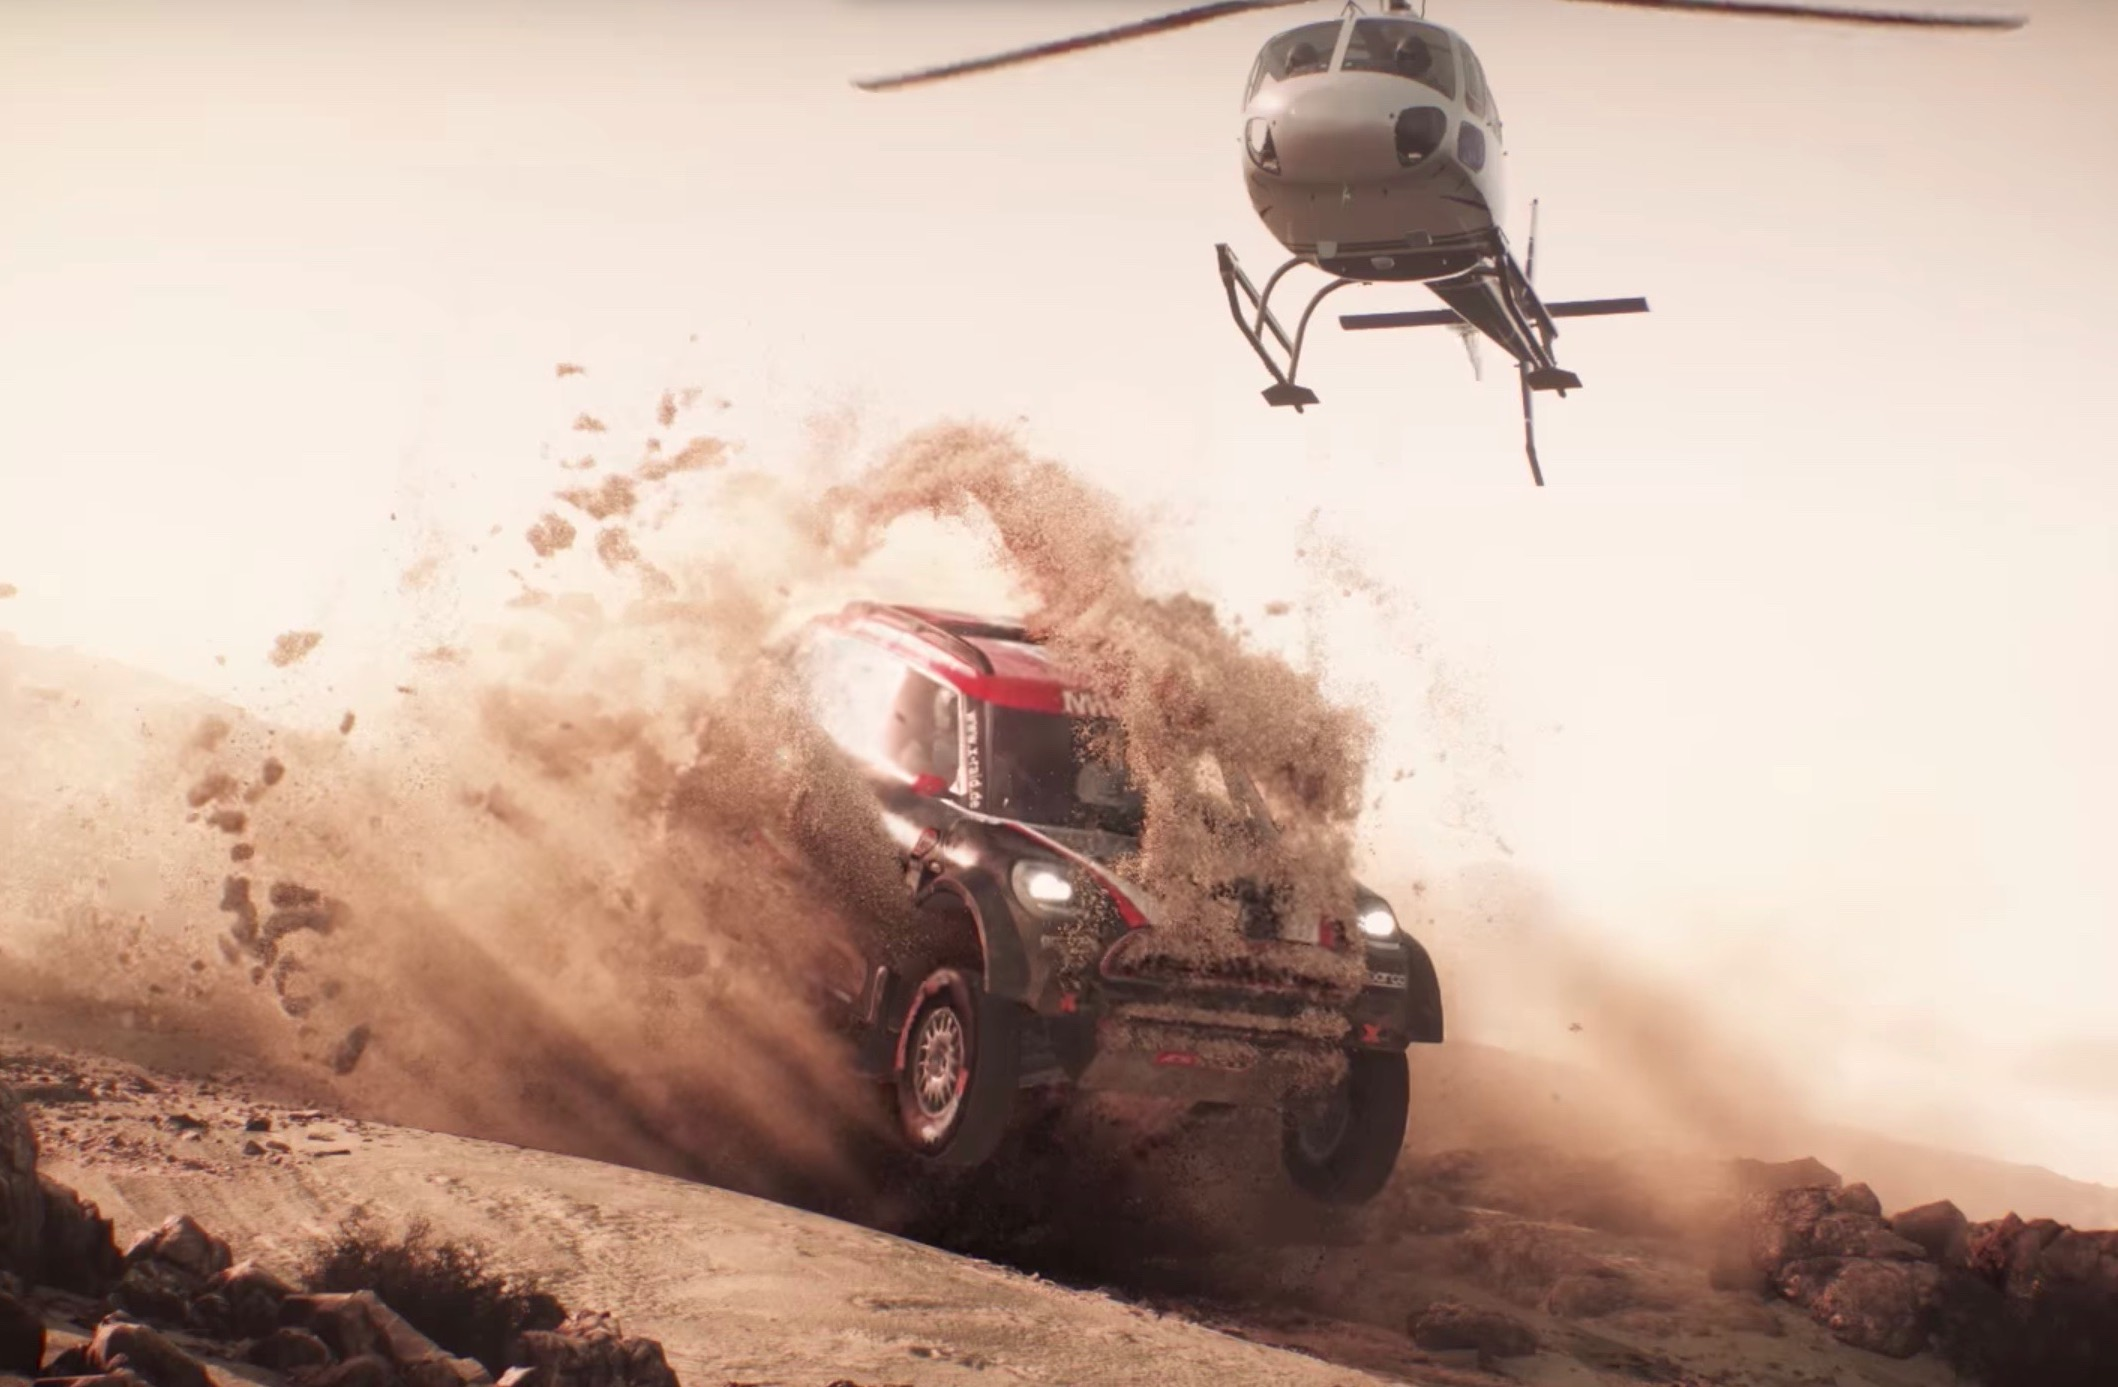 video dakar 18 trailer looks good new rally game for ps4. Black Bedroom Furniture Sets. Home Design Ideas